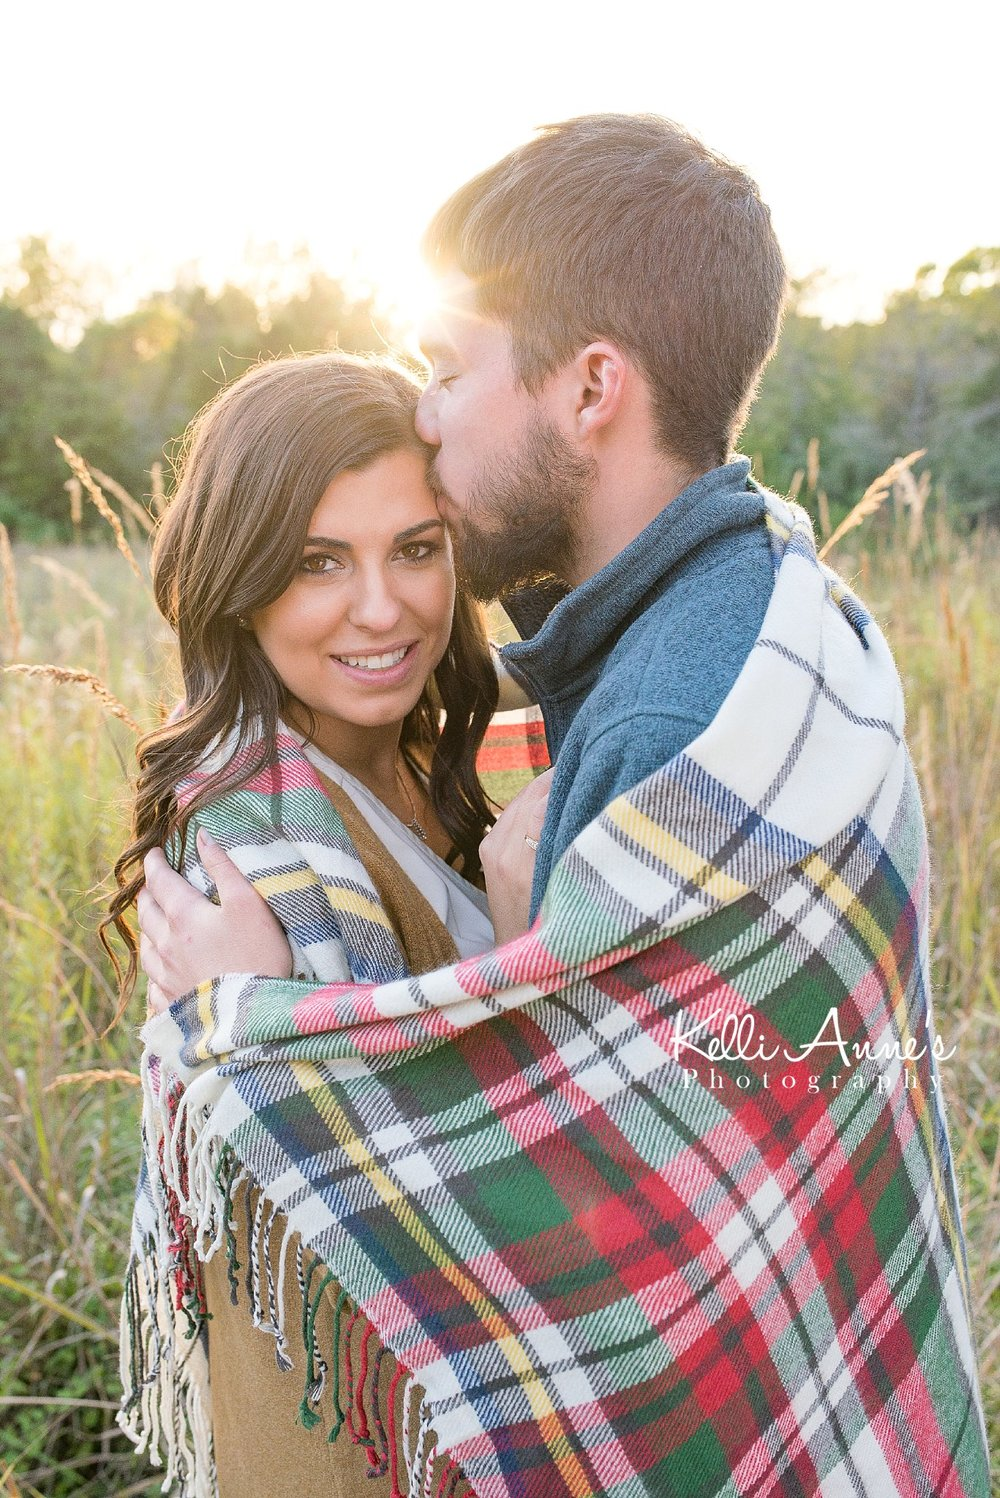 Engagement Session, Fall, Capen Park, Columbia MO, field, blanket, plaid blanket, woods, warm, sun kissed, sunset, Trees, Floral mustard sweater, jeans, boots